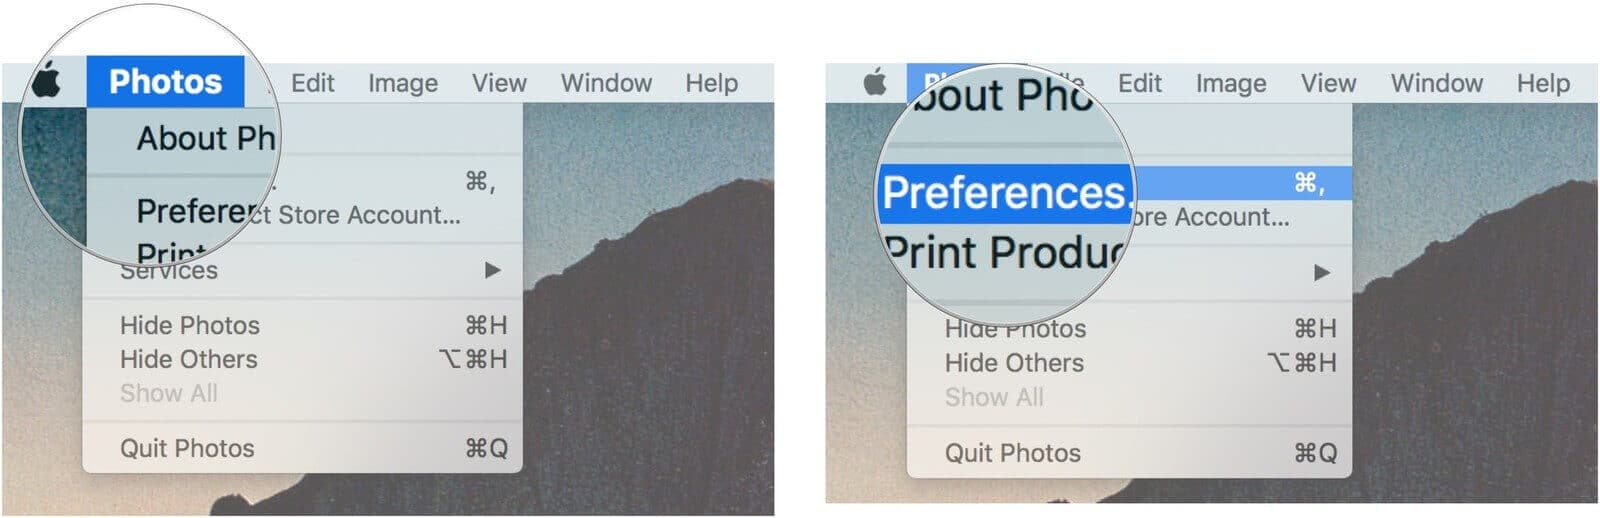 Choose photos and prefrences